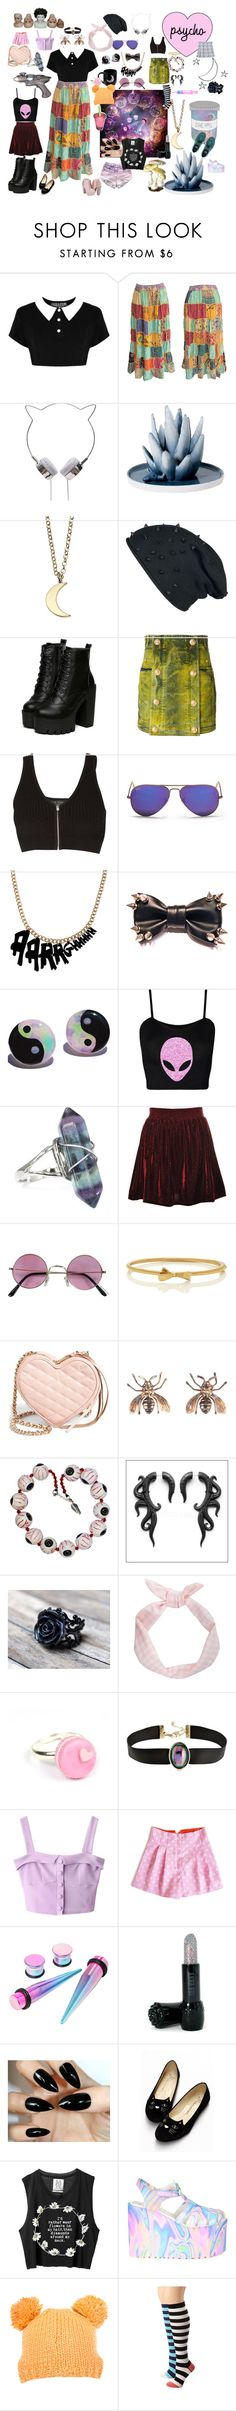 """""""My interests are really messy"""" by horsegirlnamedethyl ❤ liked on Polyvore featuring Killstar, Alöe, Minor Obsessions, Balmain, rag & bone, Ray-Ban, Hudson Jeans, Kate Spade, Zone and Rebecca Minkoff"""